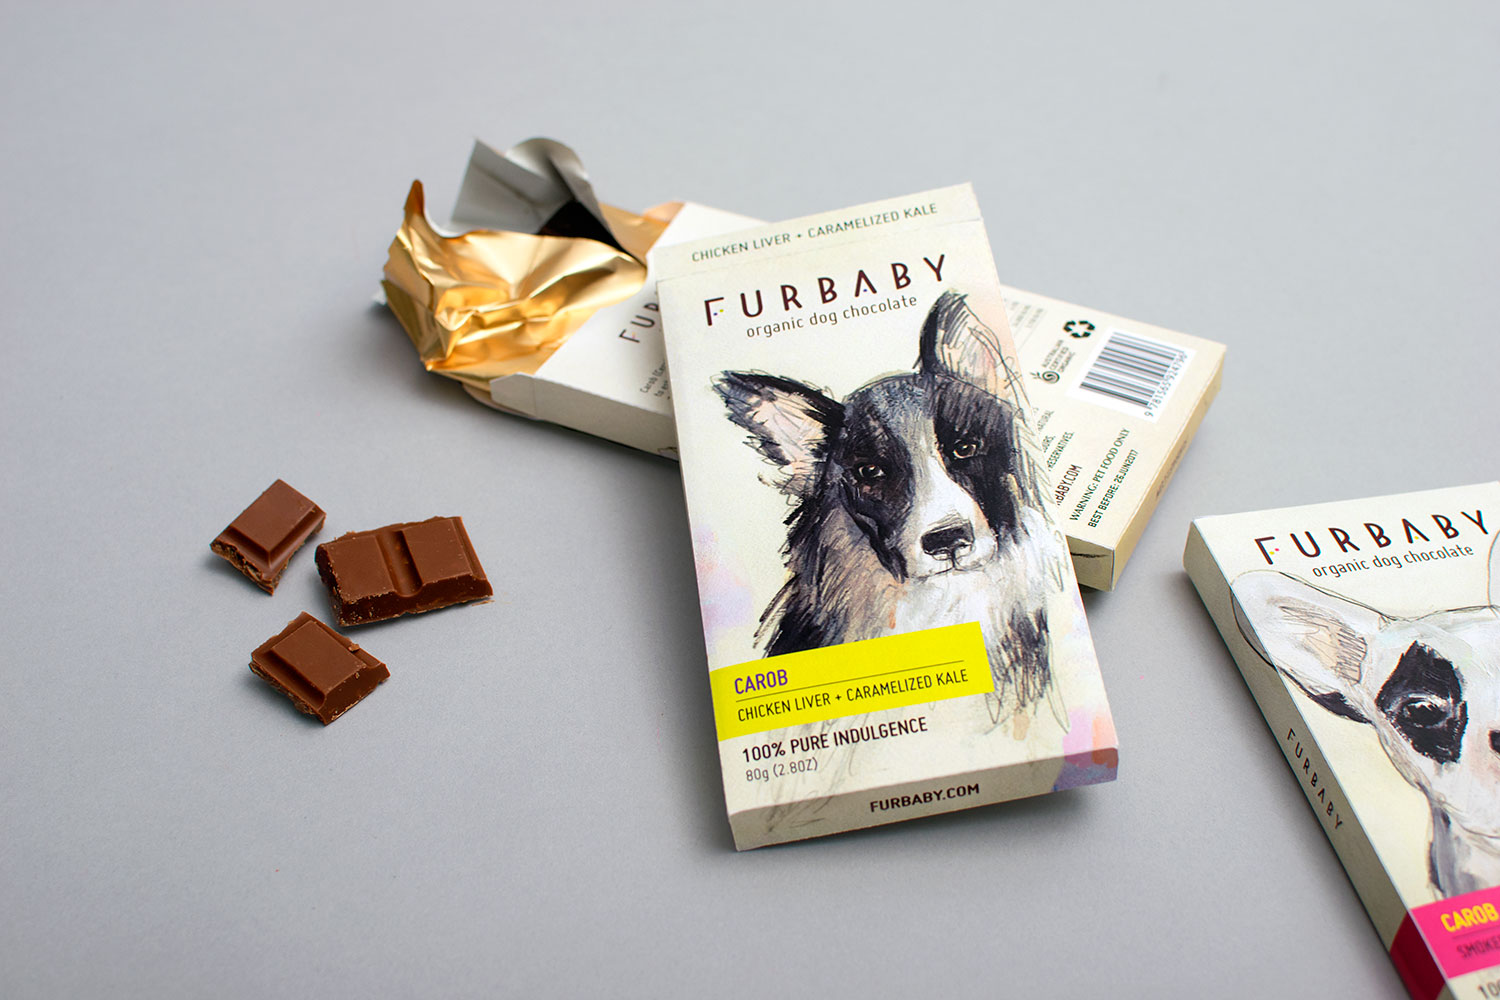 Chocolate packaging and branding graphic design, Furbaby organic dog chocolate, featuring hand drawn dogs, typesetting and original logo design.